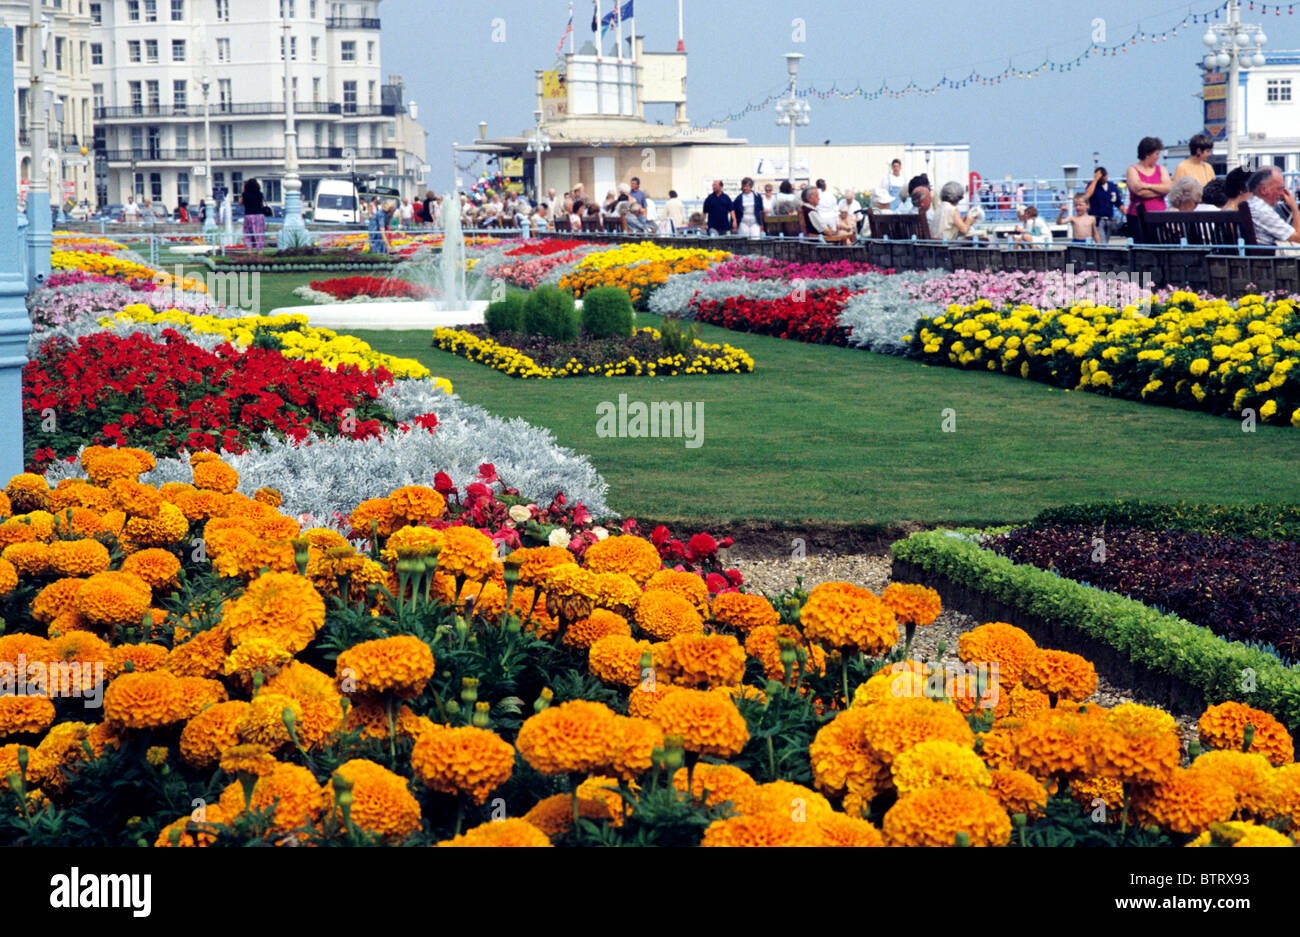 Eastbourne Sussex Seafront Flower Gardens Flowers Garden Couth